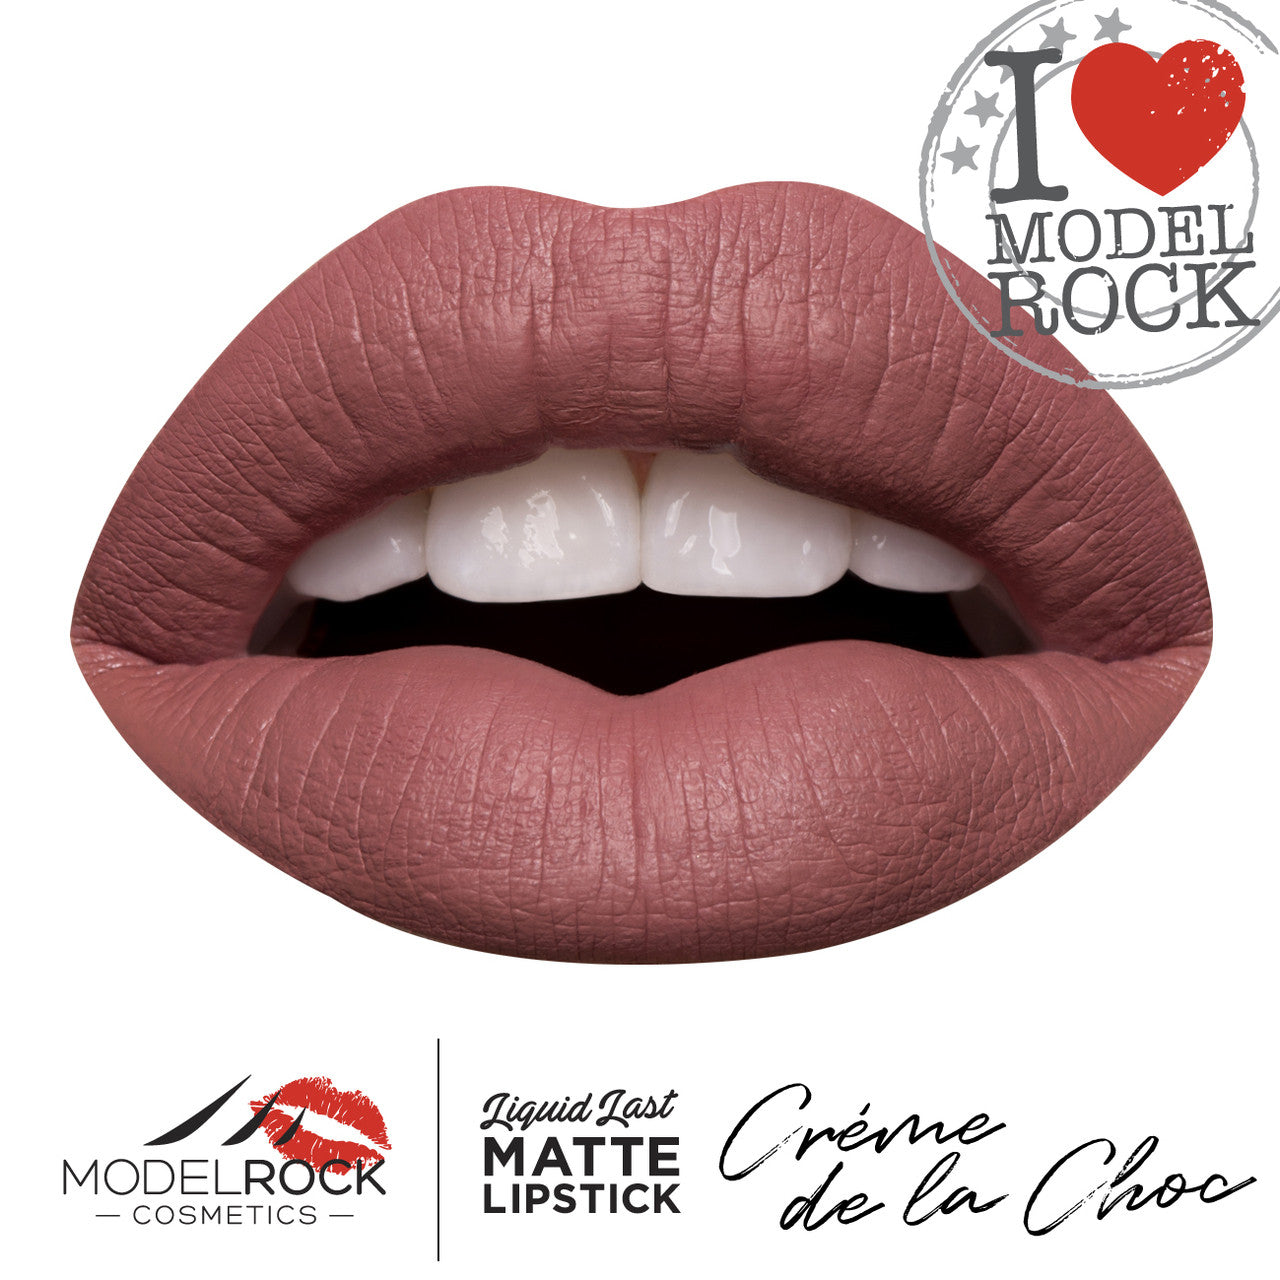 Model Rock Liquid Last liquid to Matte Lipstick - **CREME DE LA CHOC**